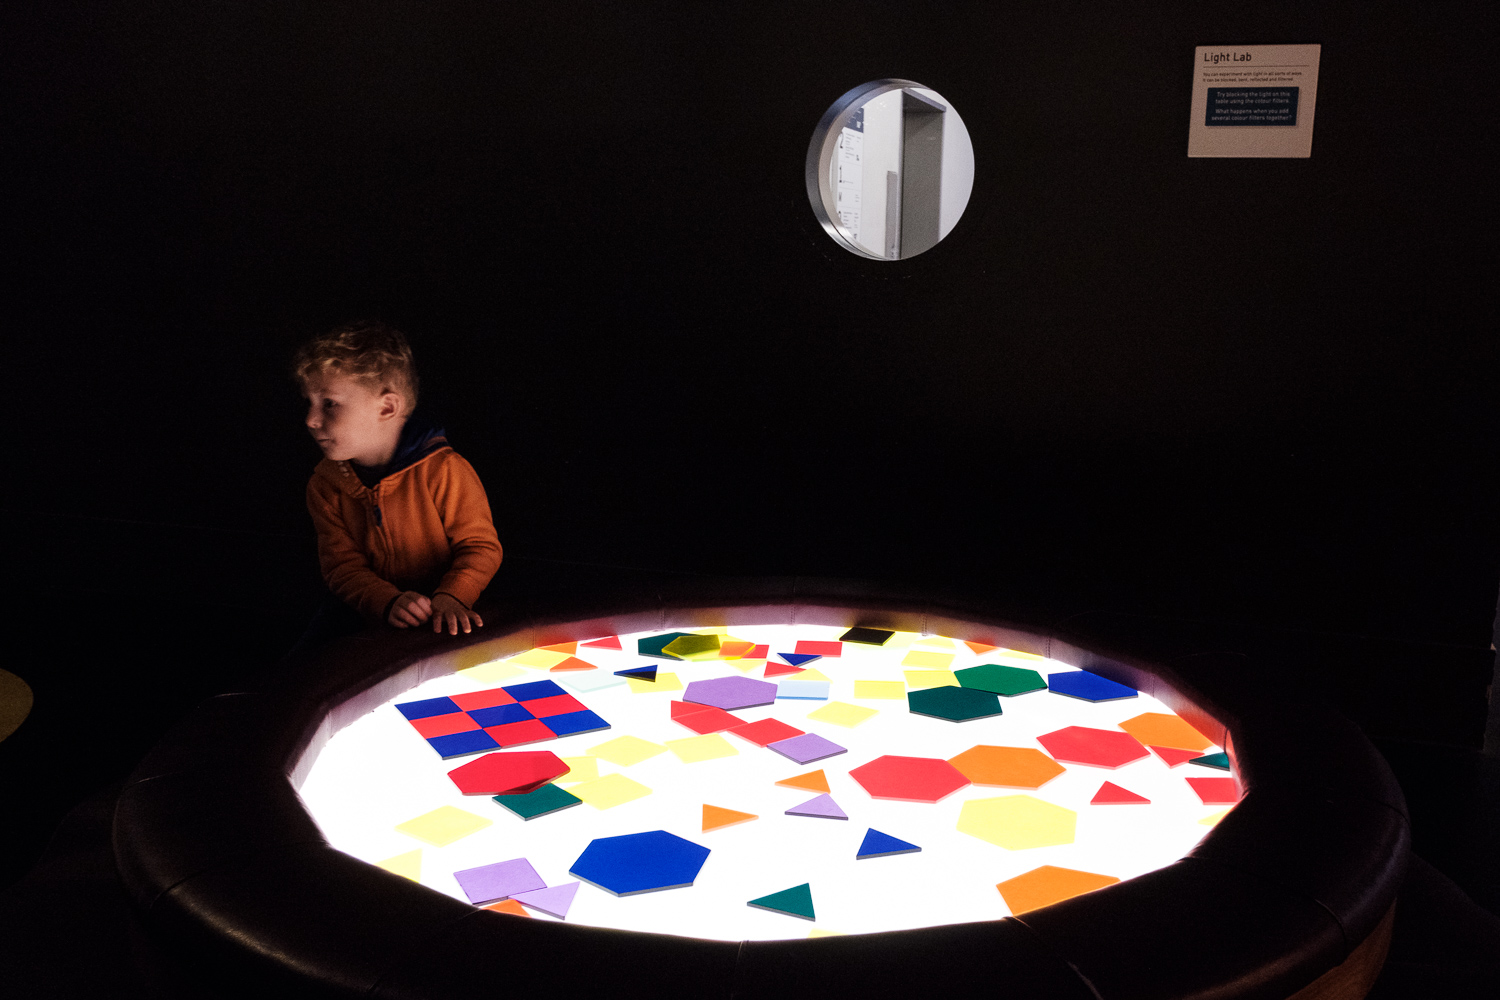 Child exploring an illuminated circular table with coloured shapes.